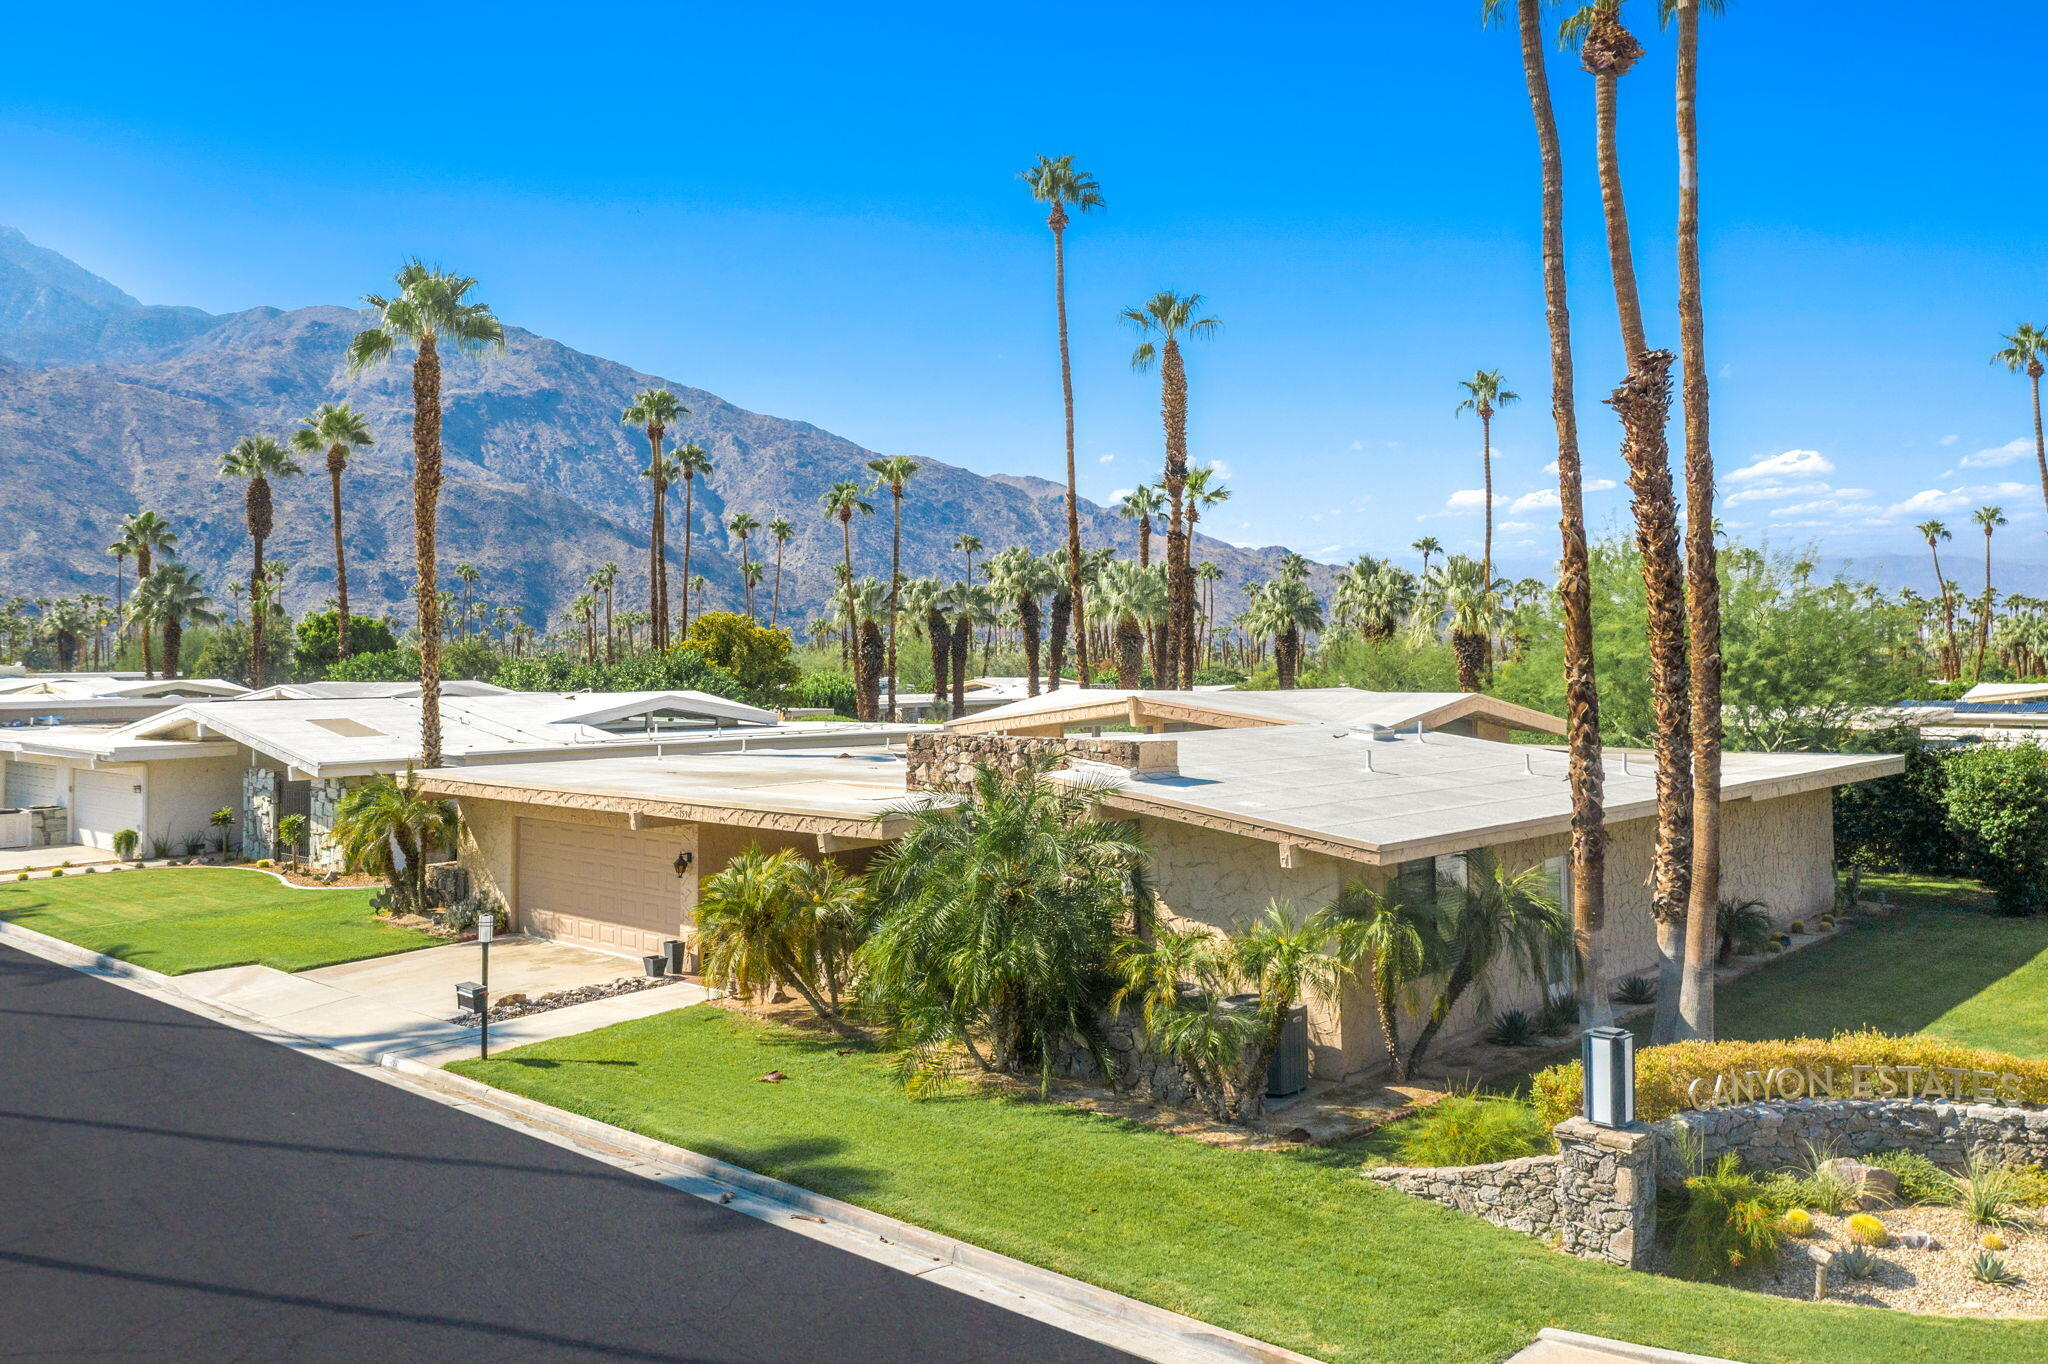 Looking for idyllic living in an active Palm Springs community? Be sure to see this highly desirable, move-in-ready residence in Canyon Estates. Canyon Estates was developed using the design of architect Charles E. Du Bois, AIA by Palm Springs developer Roy Fey. A tiled foyer invites you into a spectacular open-plan living and dining room where a wall of glass across the rear pairs with a soaring cathedral ceiling featuring wood beams and high windows that bathe the space in sunlight. Your dine-in kitchen is a chef's delight with stainless steel appliances, plantation shutters, and direct access to the tiled and covered private patio. Step outside to enjoy relaxing views of lush landscaping and well-maintained grounds. It's an ideal spot for sipping your morning coffee and enjoying al fresco meals. Take advantage of a separate laundry room and an attached 2-car garage. You'll have access to the executive par-3 golf course, 15 community swimming pools, 12 spas, two championship tennis courts, and pickleball courts. Your clubhouse features a library, a pool table, and a fitness center, plus shopping and dining are nearby on East Palm Canyon Drive. Come make this carefree lifestyle your very own before the opportunity passes you by!